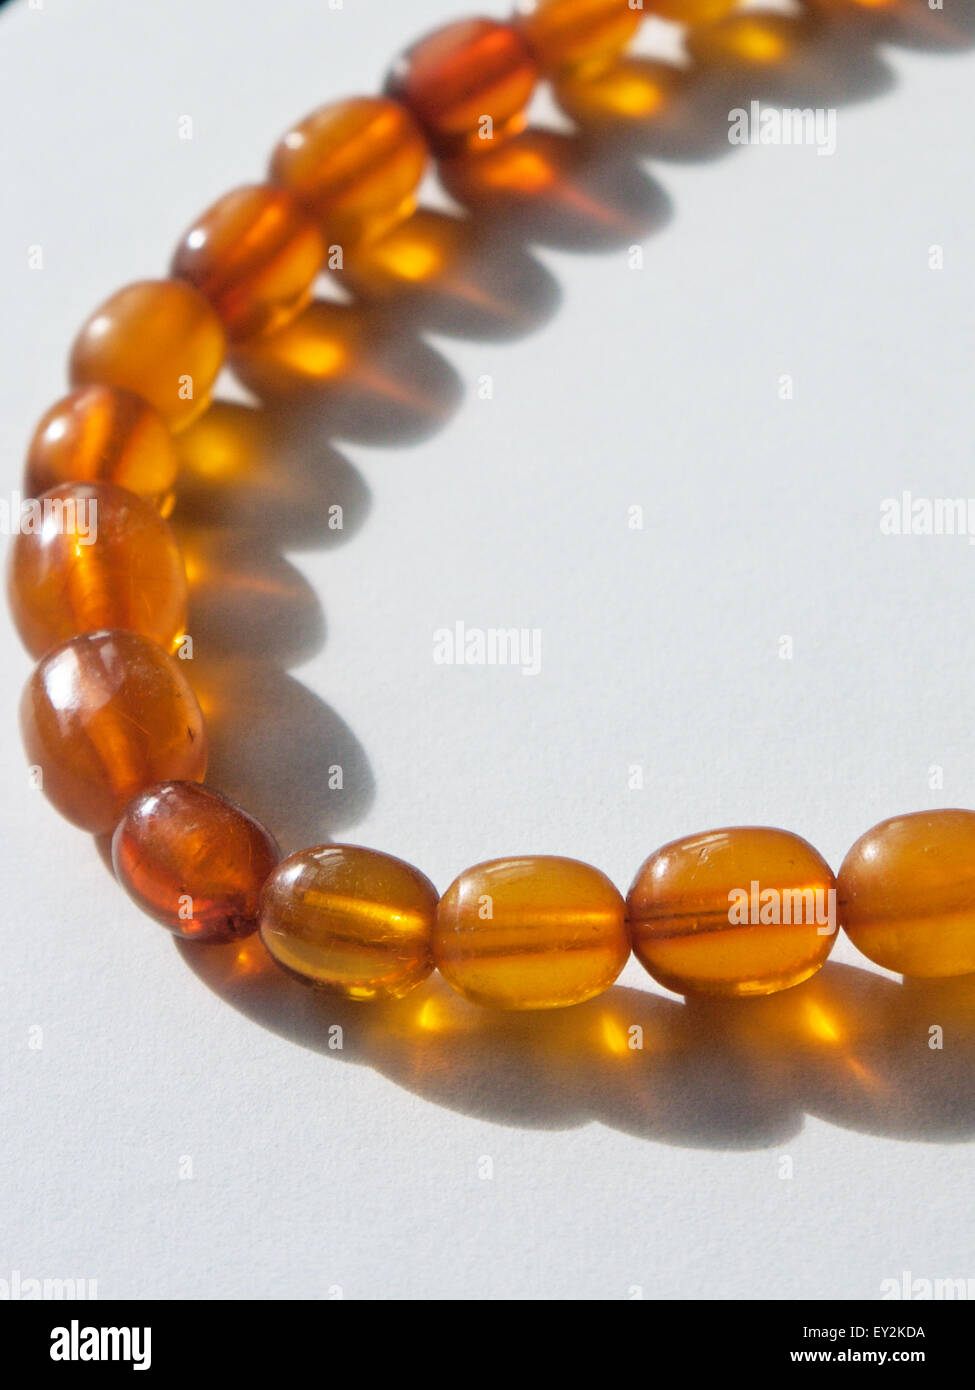 Tight shot of an amber, beaded necklace. - Stock Image